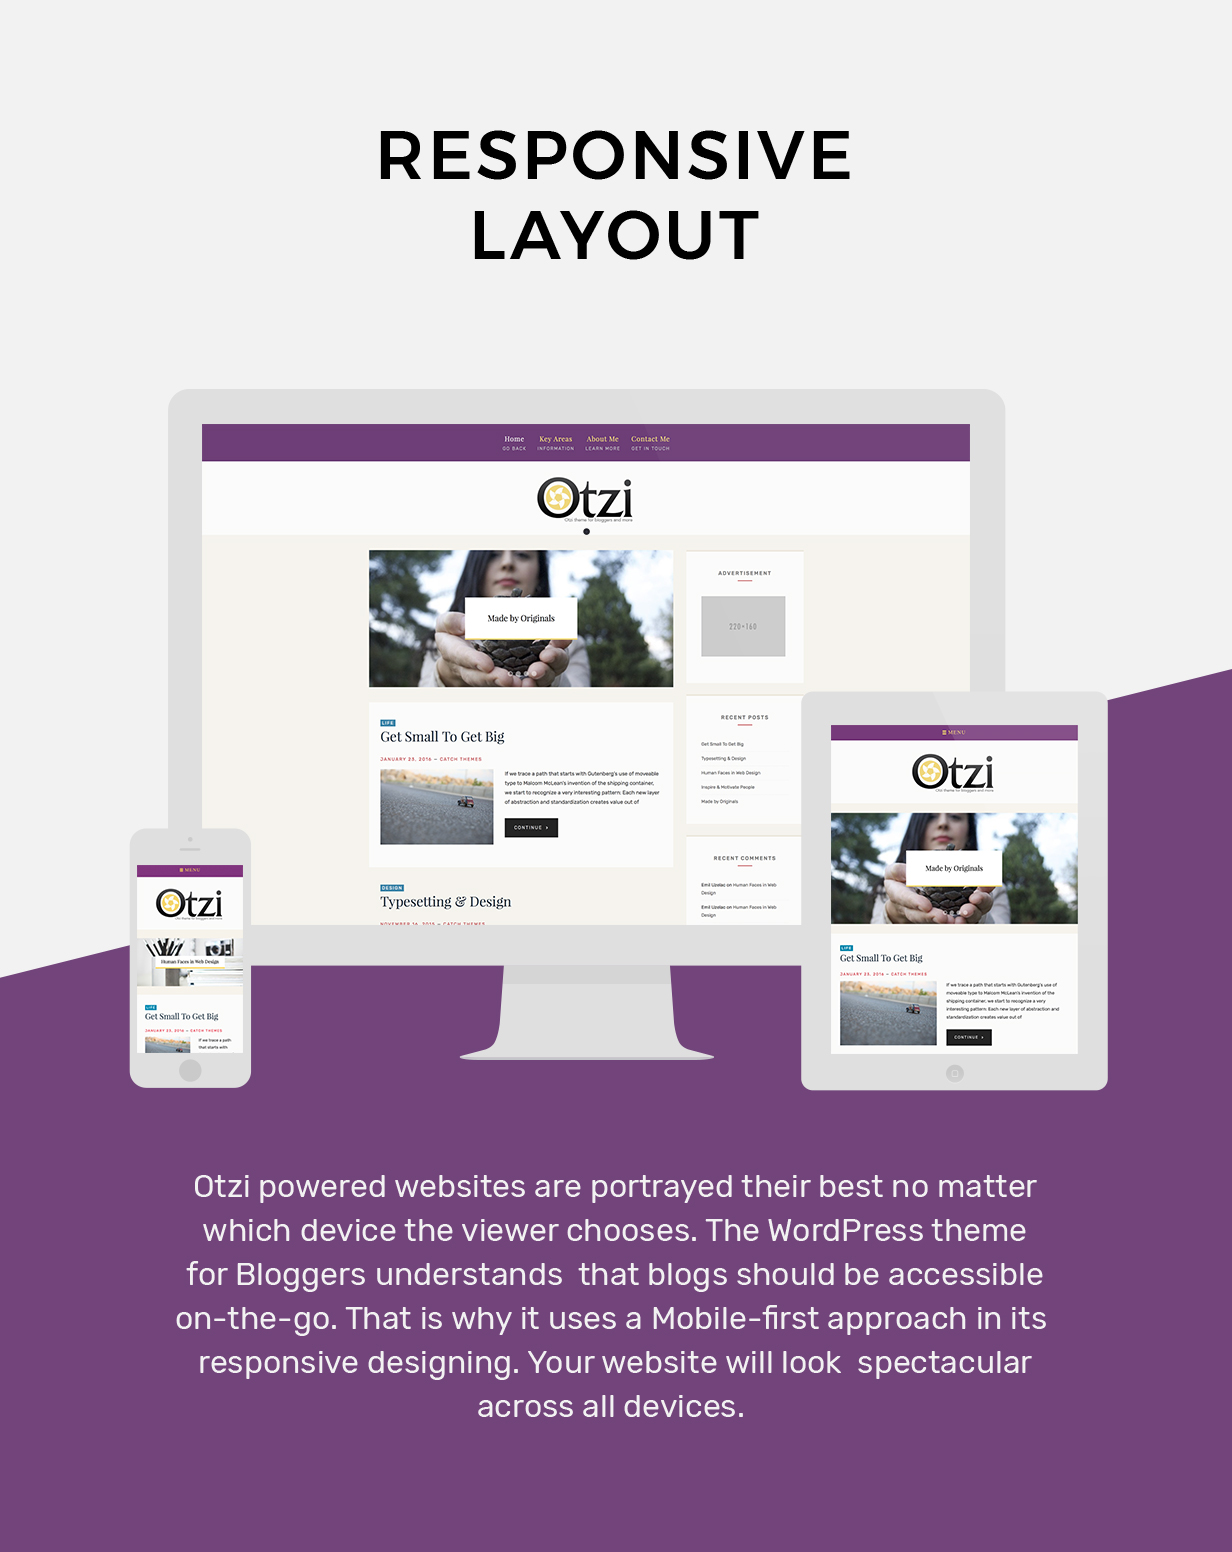 WordPress theme for Bloggers